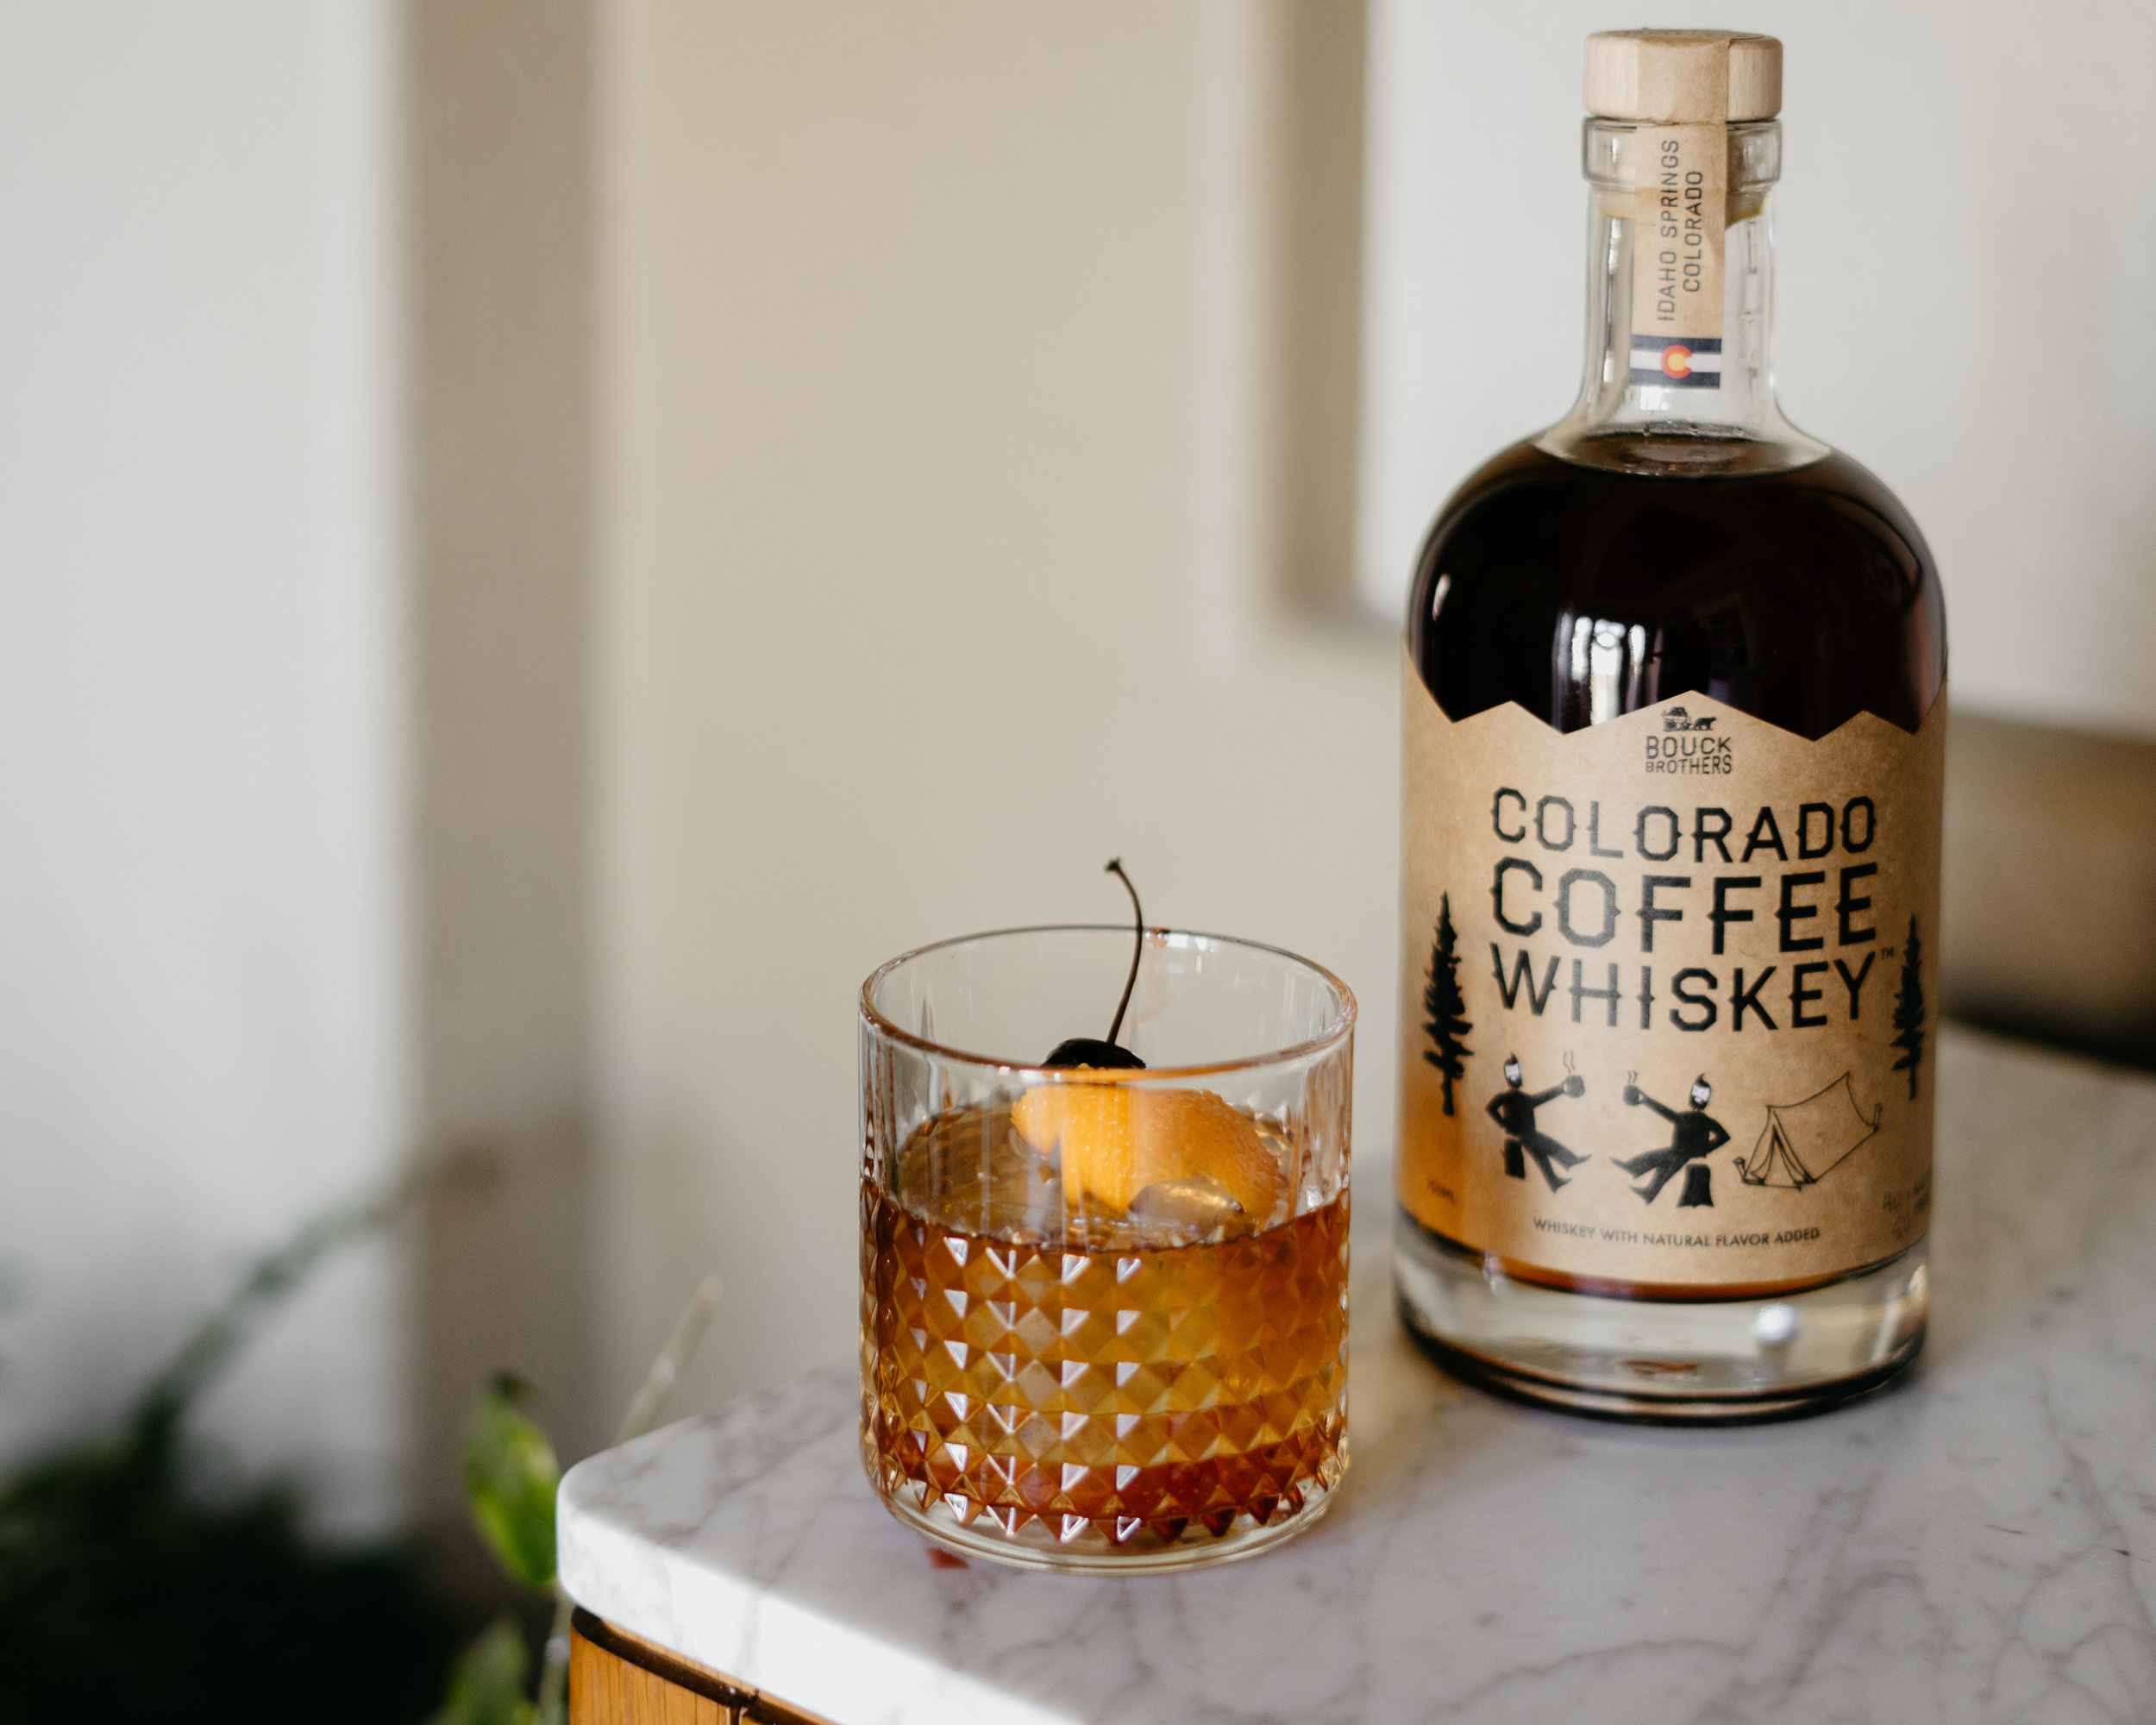 Coffee Walnut Old Fashioned - 2 oz Colorado Coffee Whiskey1/4oz real maple syrup2 dashes Fee Brothers Black Walnut Bitters.Stir ingredients together in a lowball glass, add a few ice cubes and enjoy! Garnish with a strip of orange zest and a cherry, if you're feeling fancy.